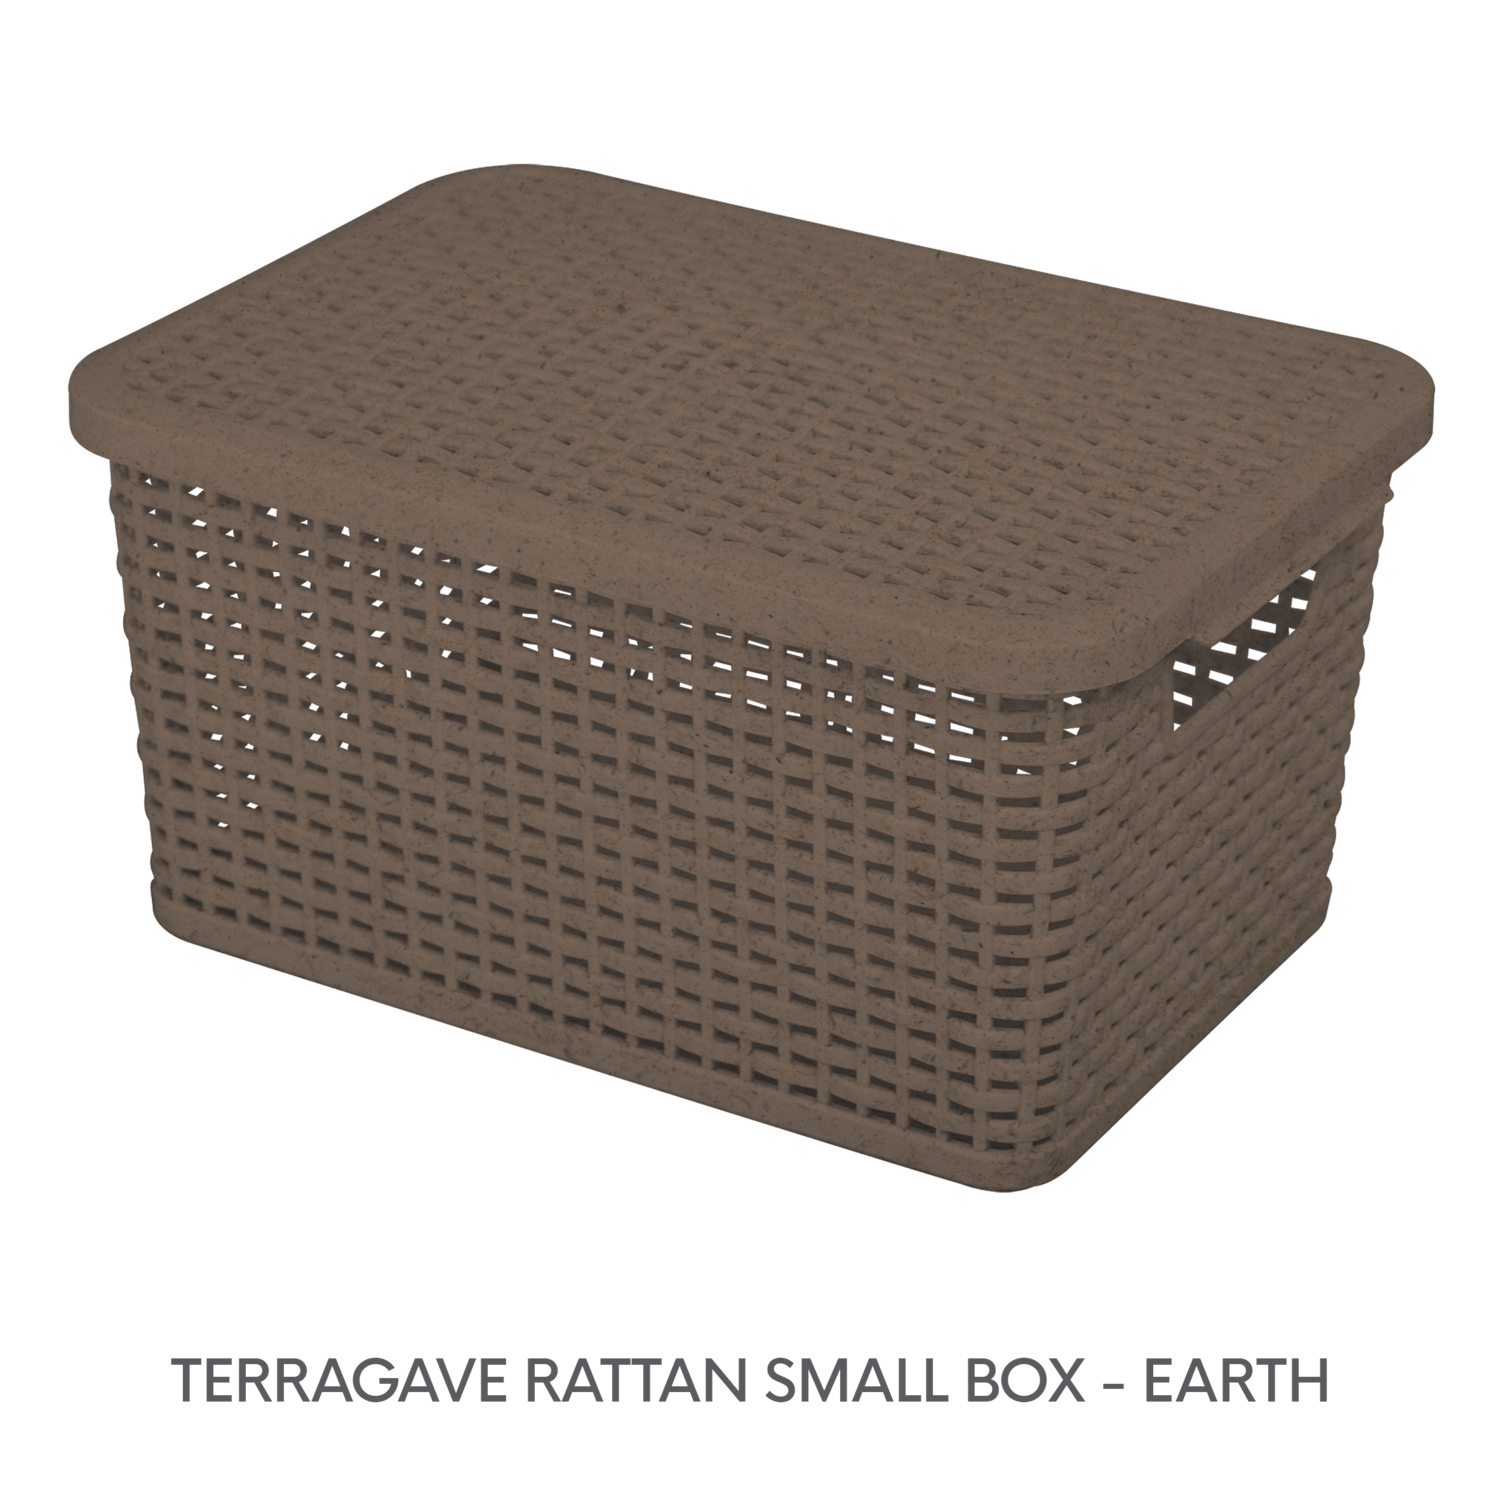 3 TERRAGAVE RATTAN SMALL BOX - EARTH.png